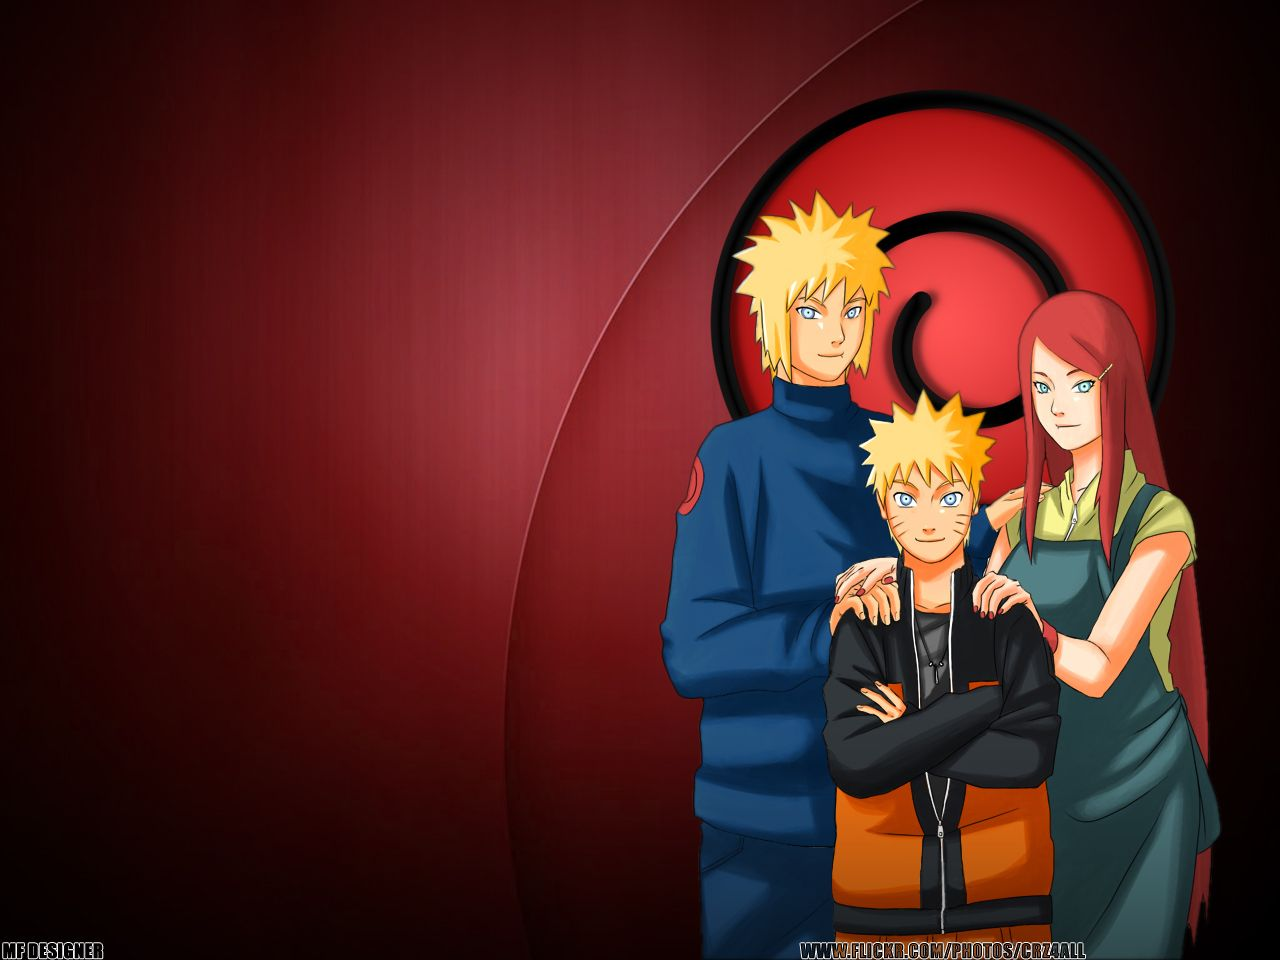 Good Wallpaper Naruto High Definition - 919bcd022503336a69d08a3aed3375f7  Gallery_845069.jpg